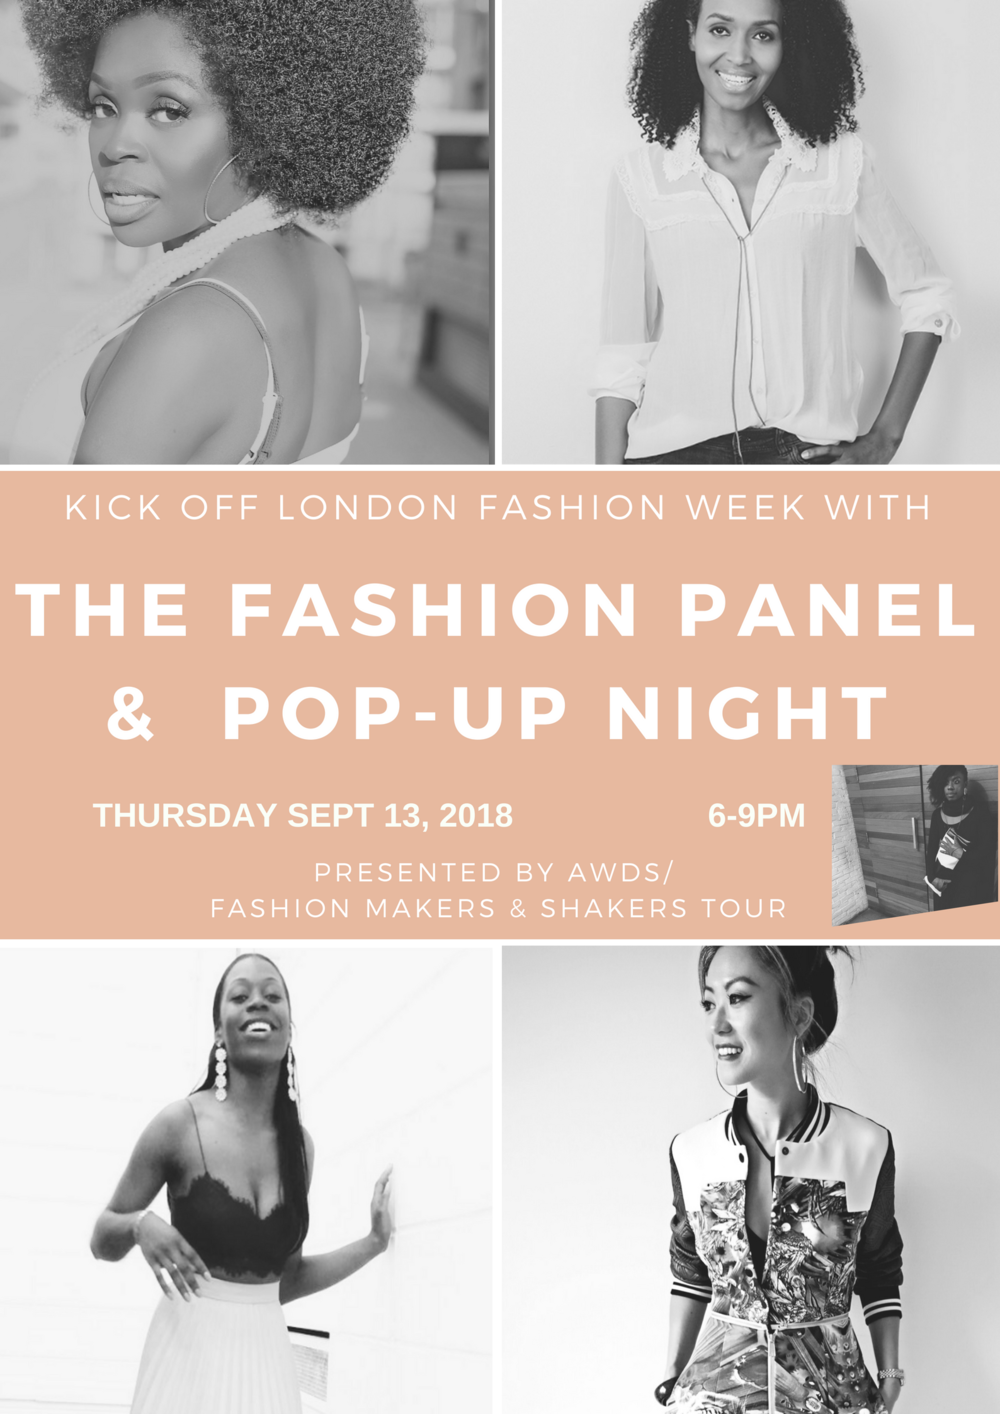 The FASHION PANEL AND POP-UP EVENT: LONDON EDITION - THURSDAY, SEPT 13, 6-9PMBUY TICKETS HERE